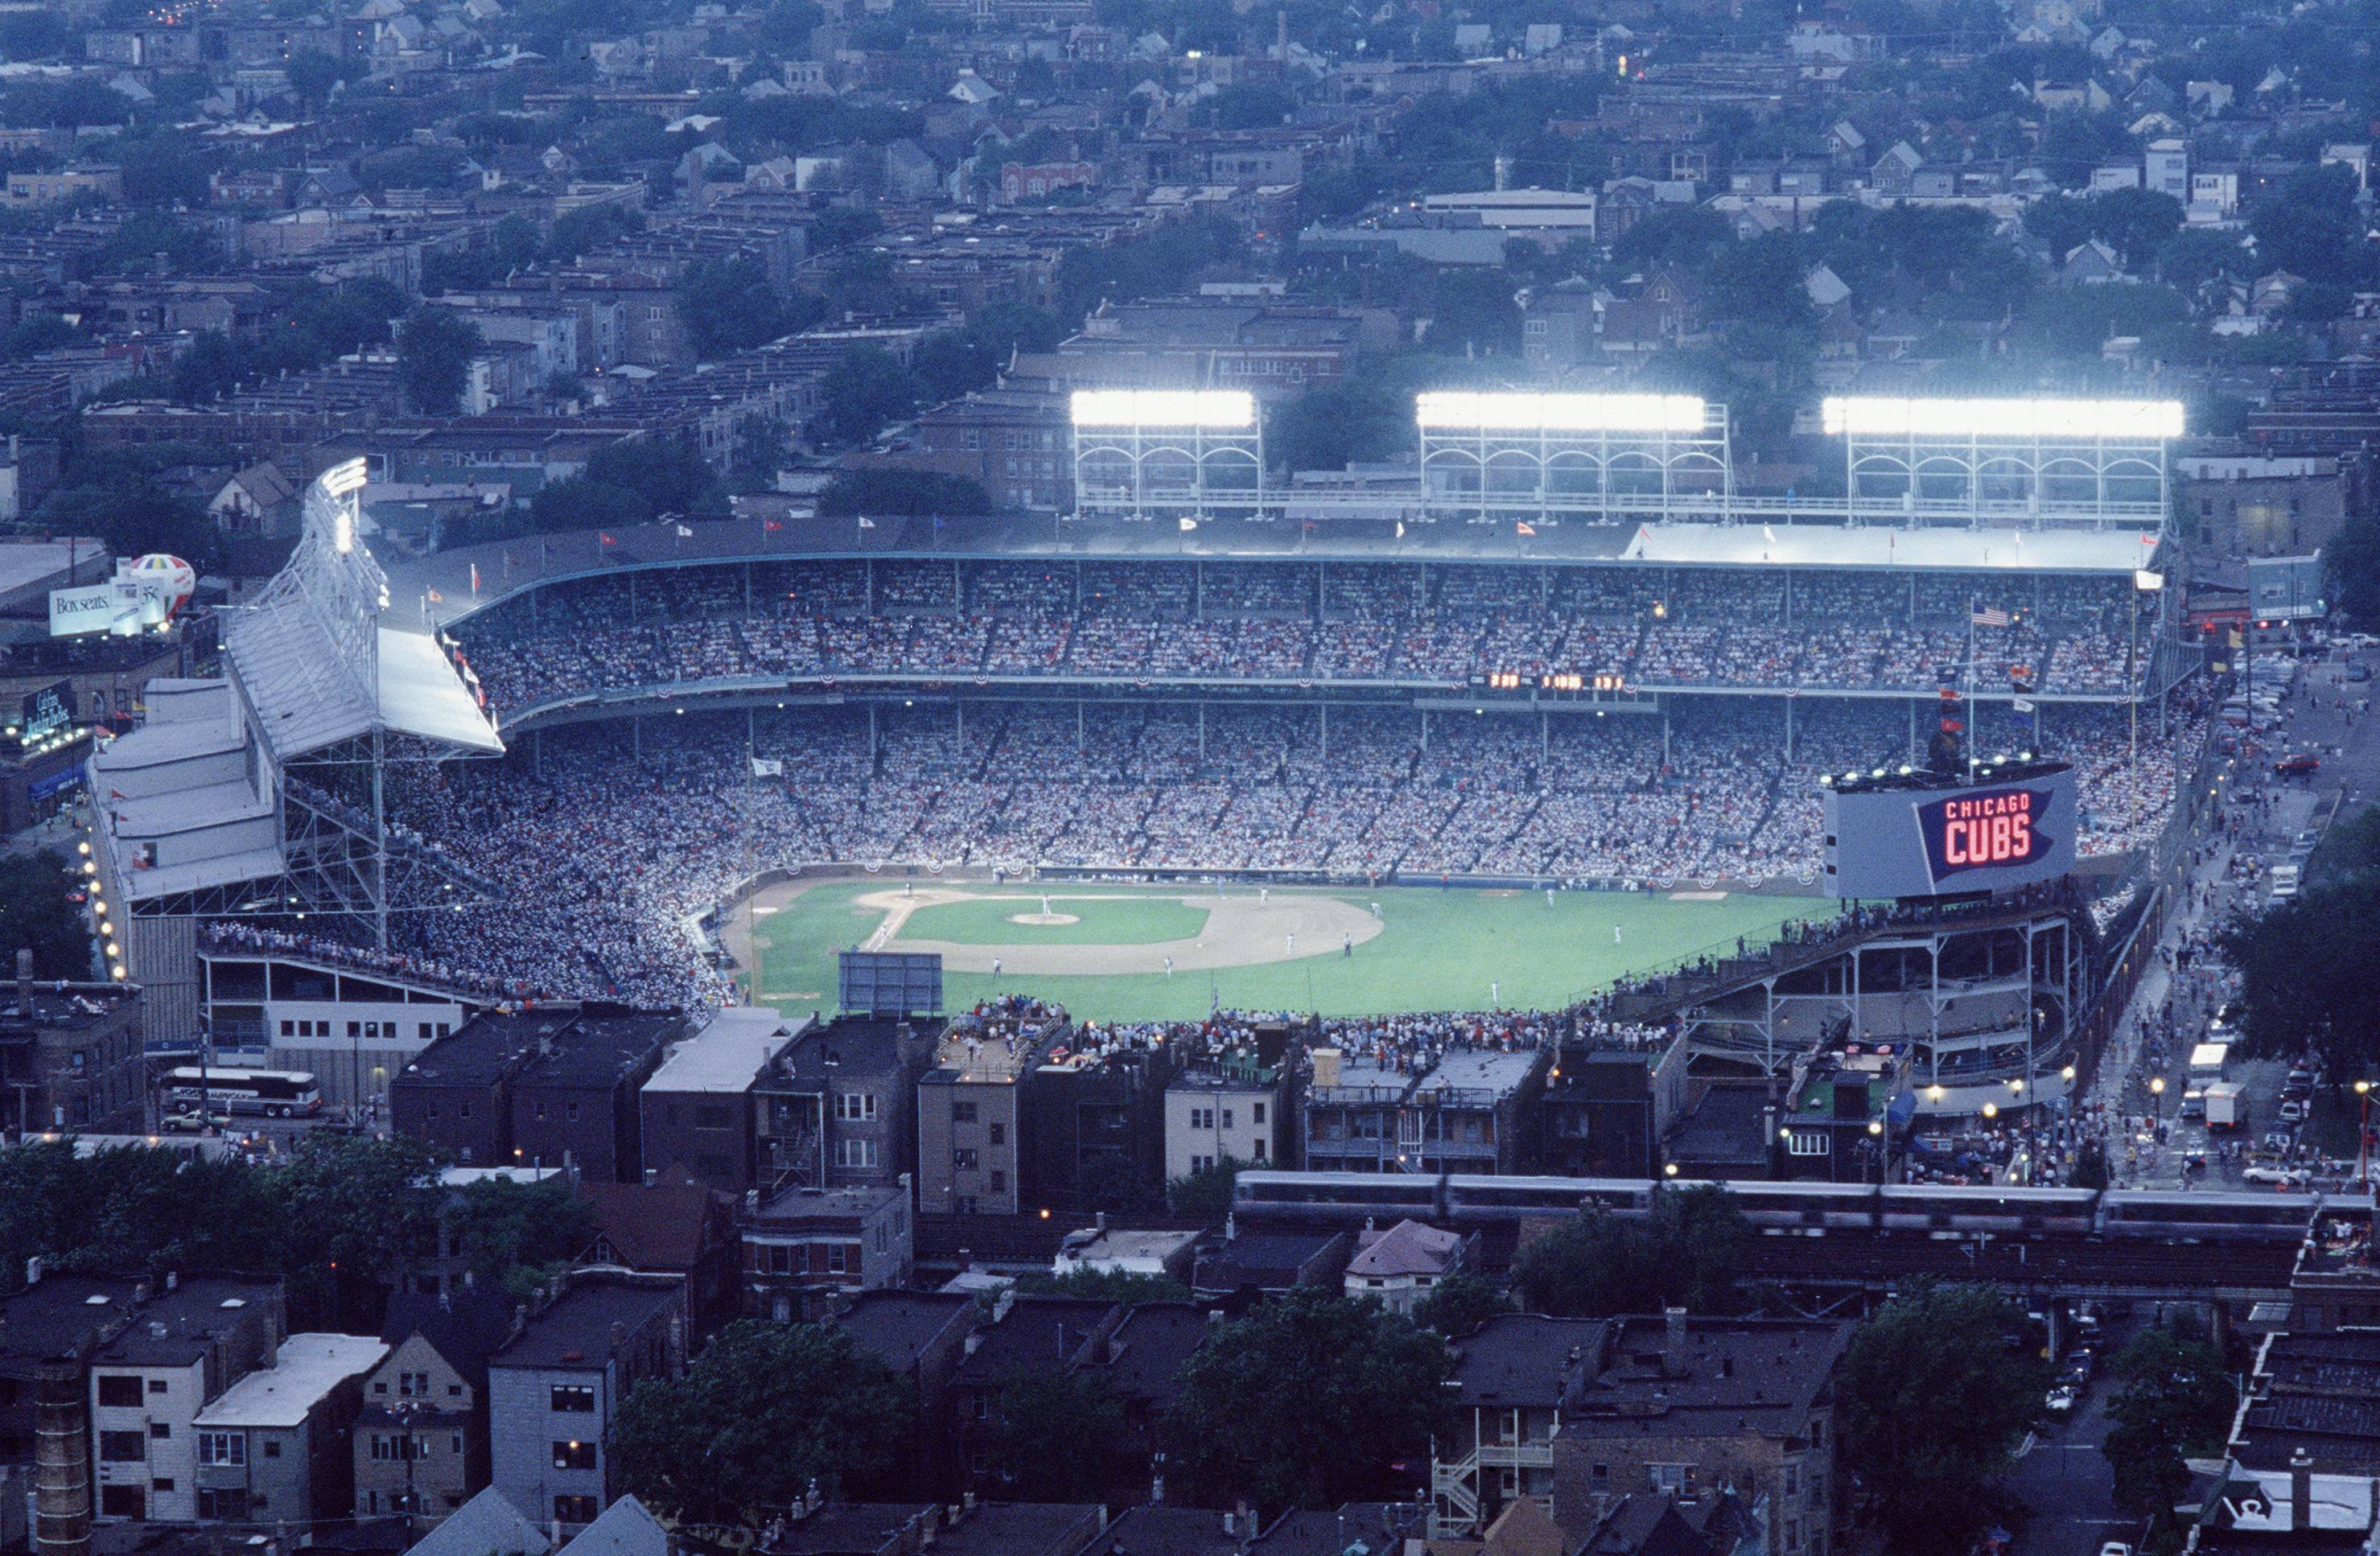 Wrigley Field is aglow for the first night game at Wrigley Field on Aug. 8, 1988. It might surprise fans how well the team has played in Wrigley Field night games.